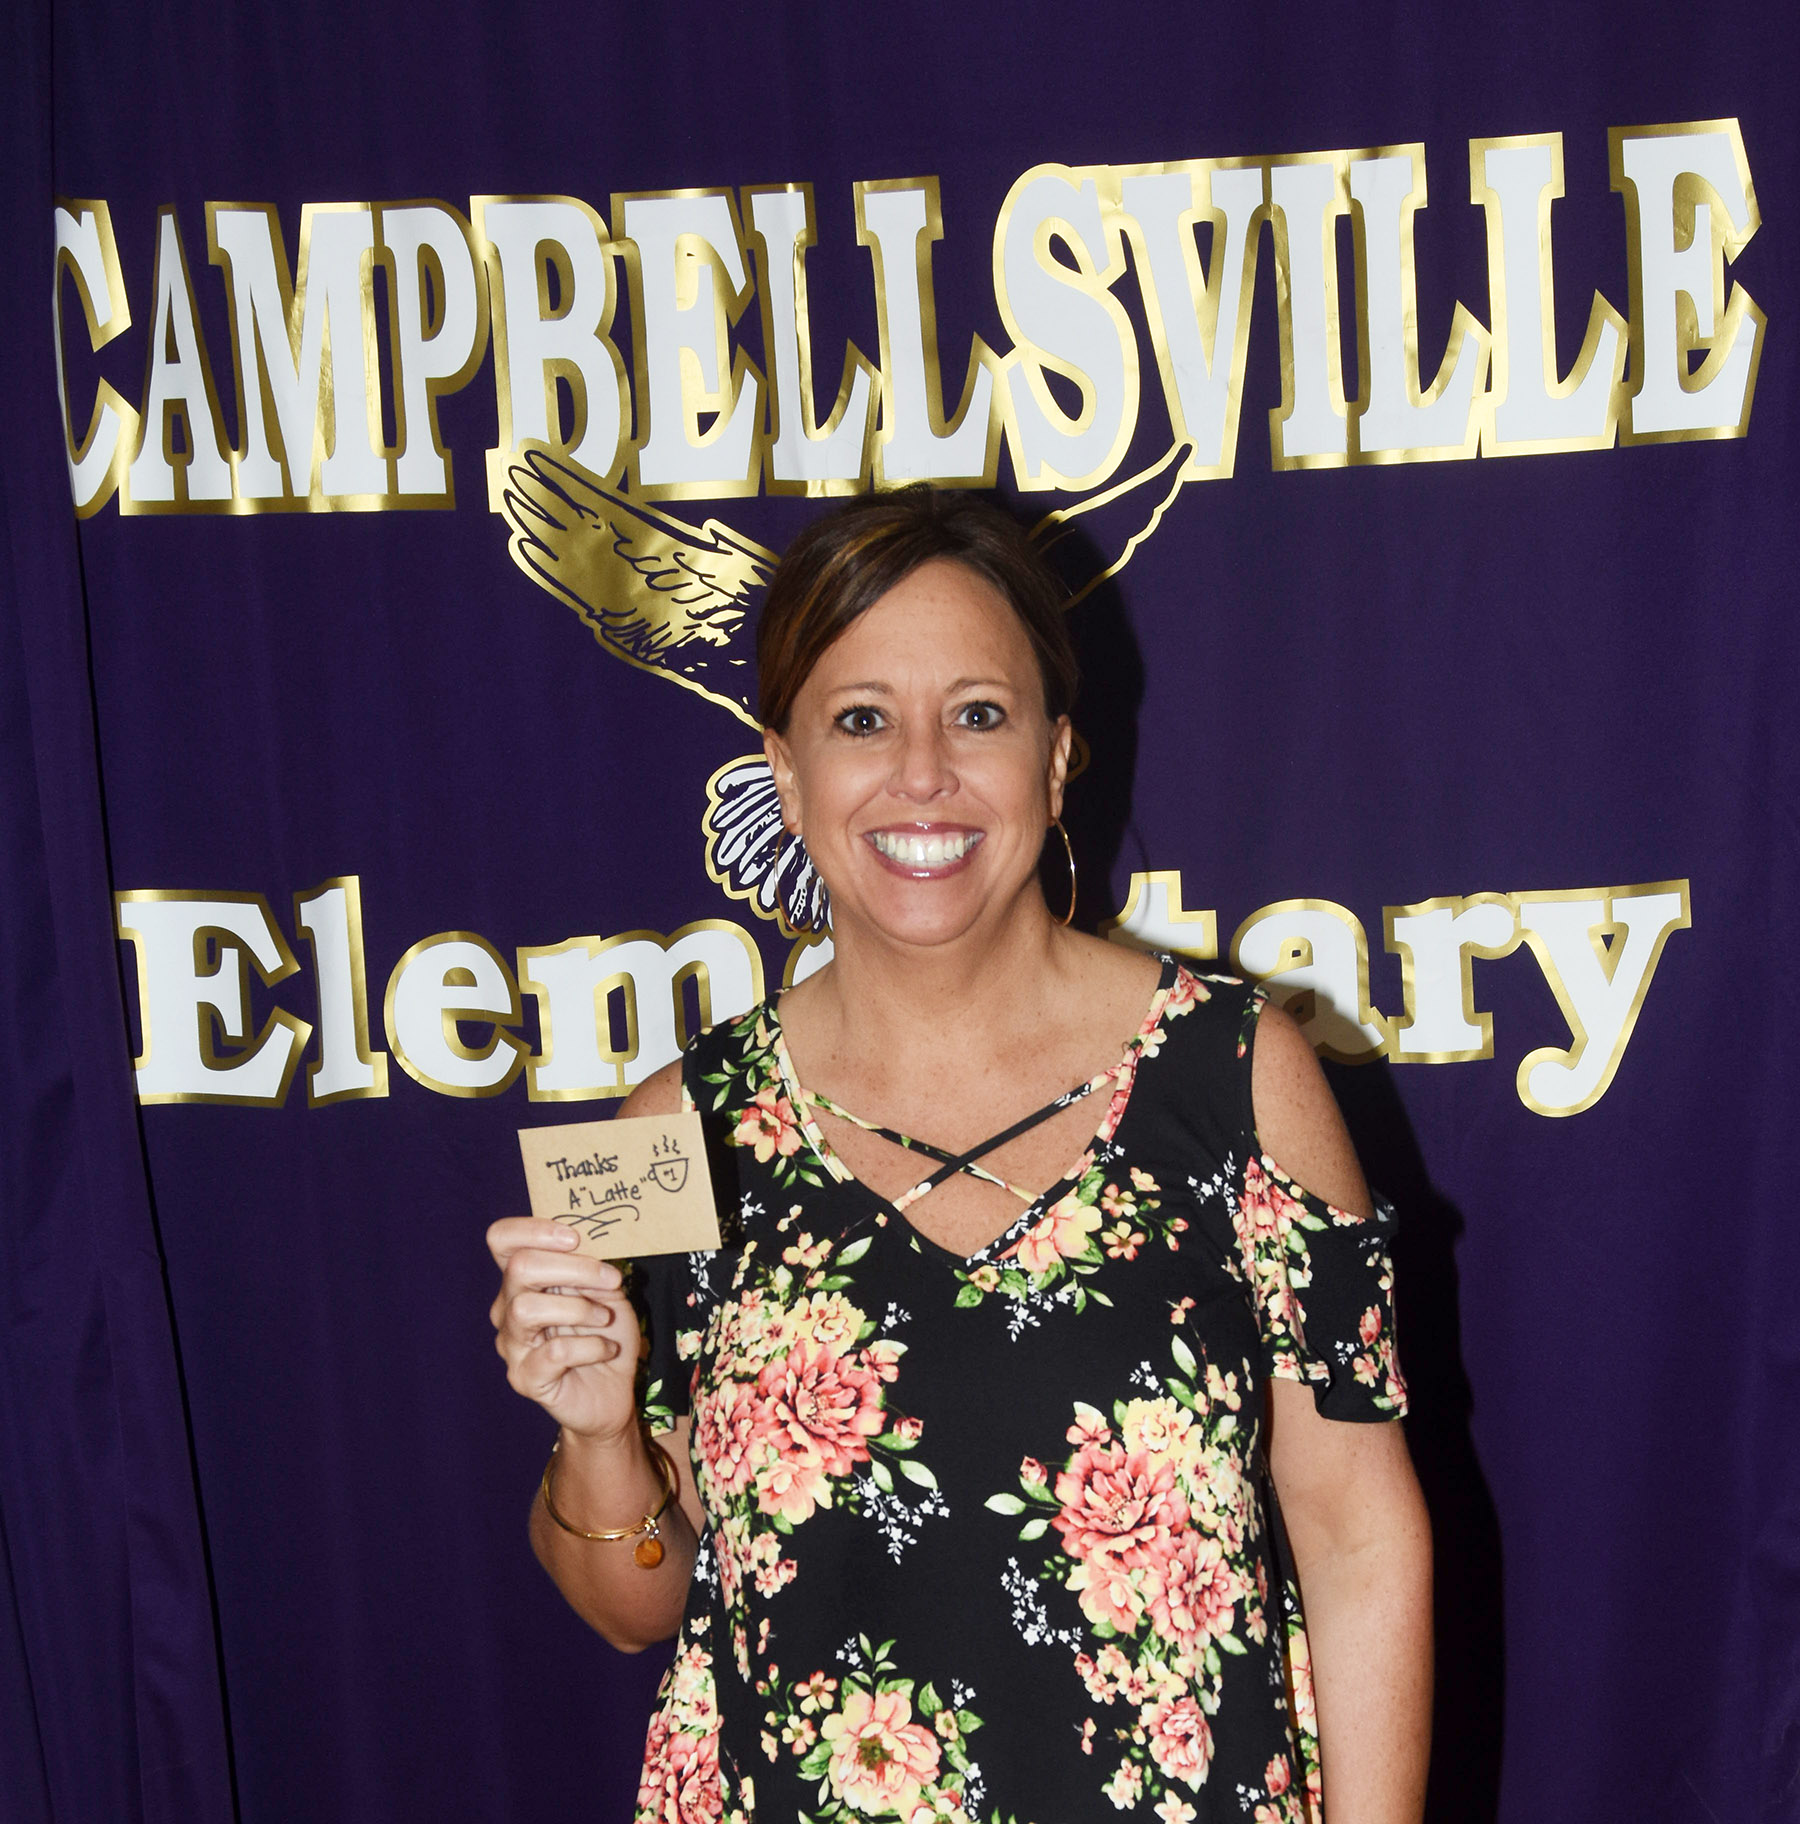 Farrah Hord, a reading interventionist at Campbellsville Elementary School, was recently named Teacher of the Week for the week of May 7.